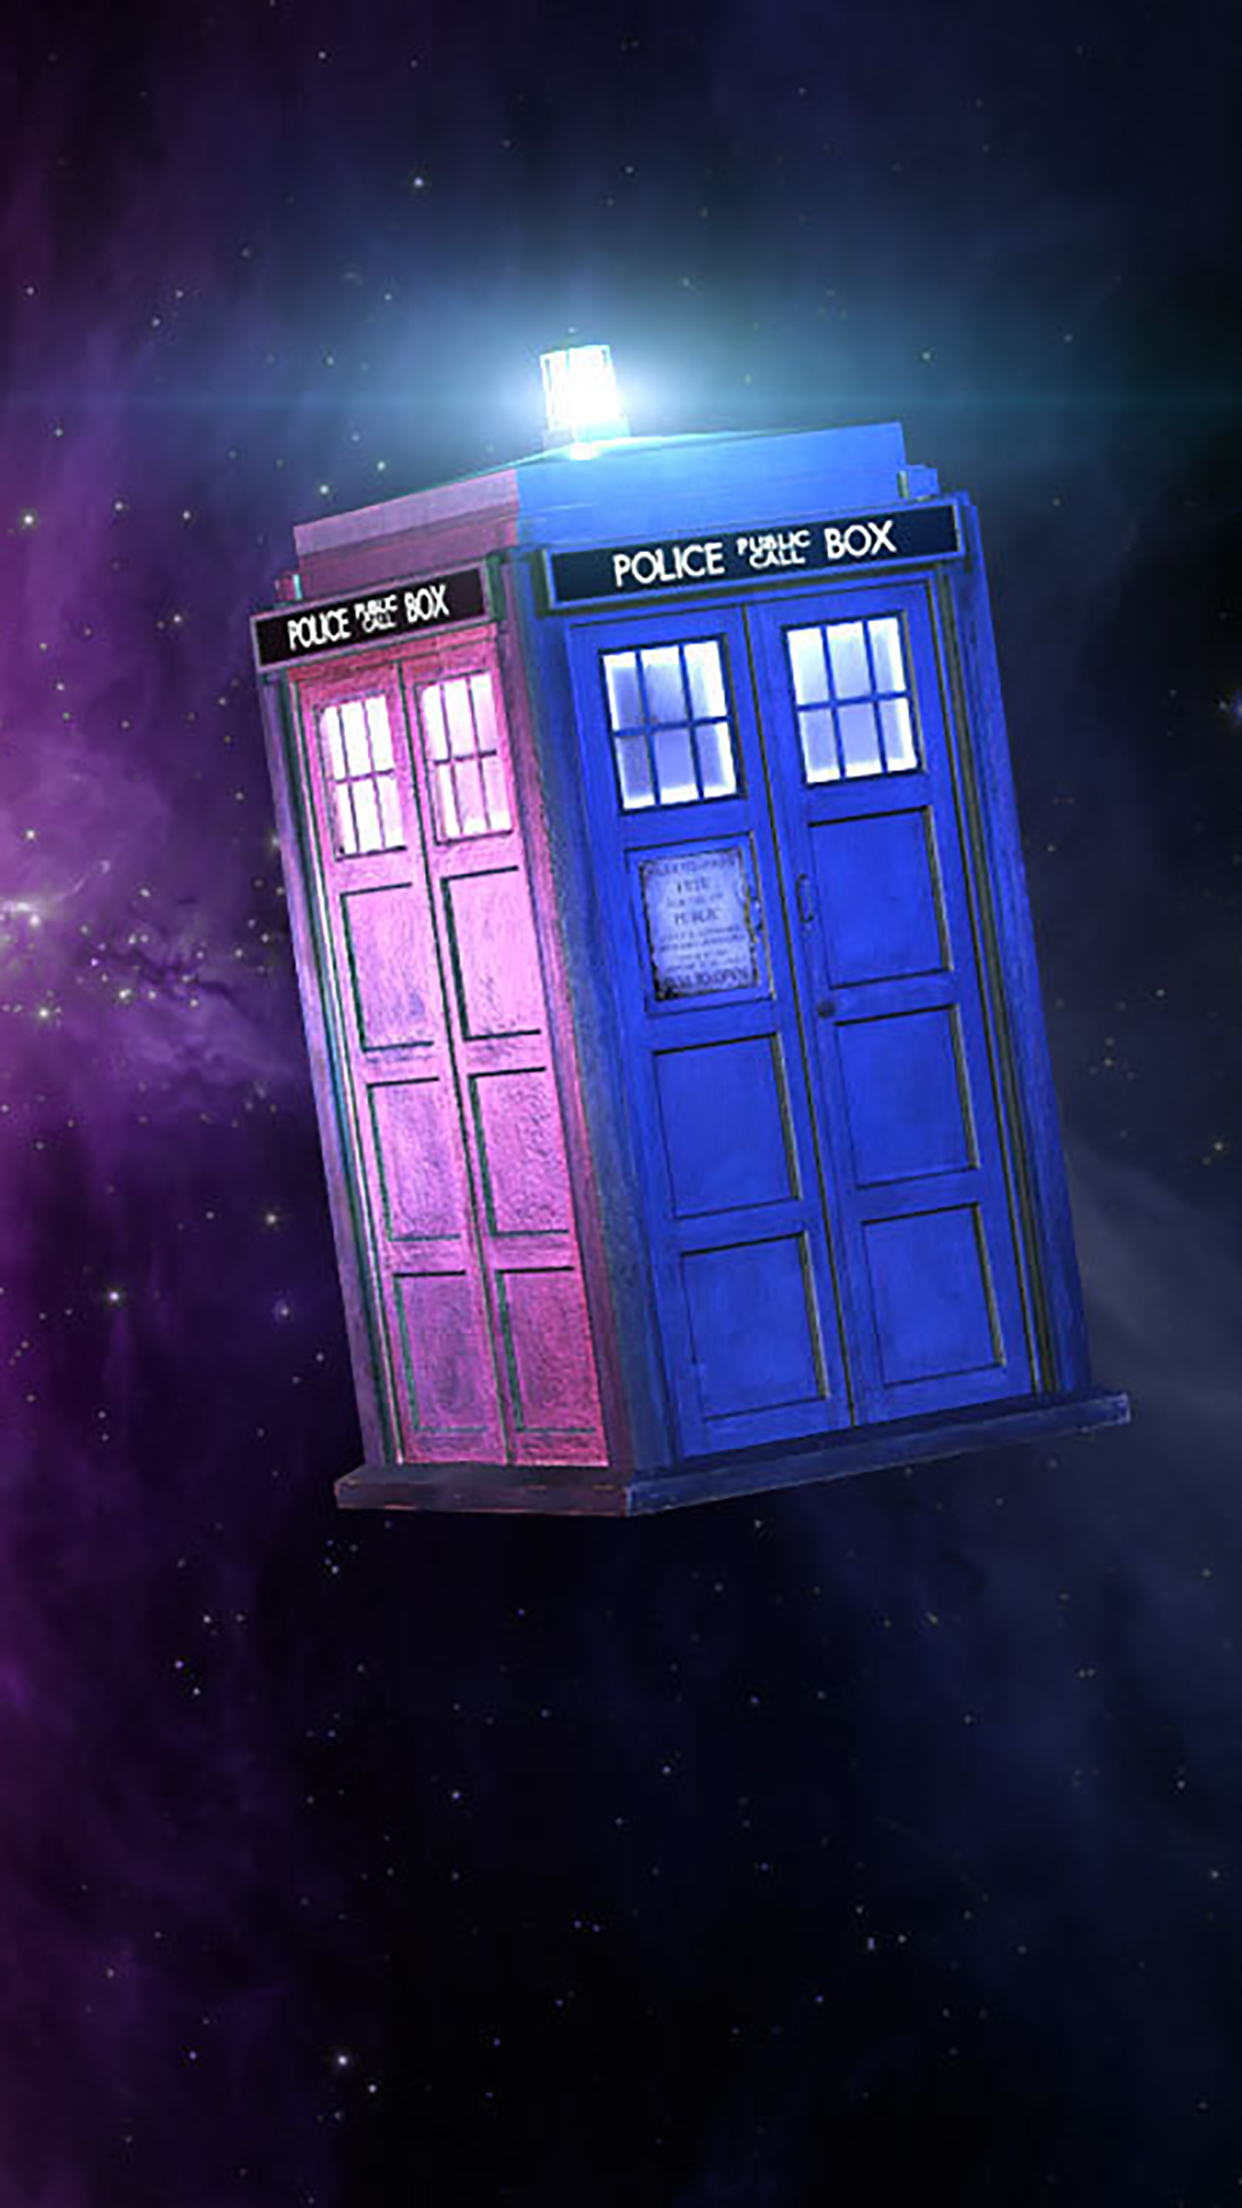 Doctor Iphone Wallpaper Doctor Who Public Call Box Wallpaper For Iphone X 8 7